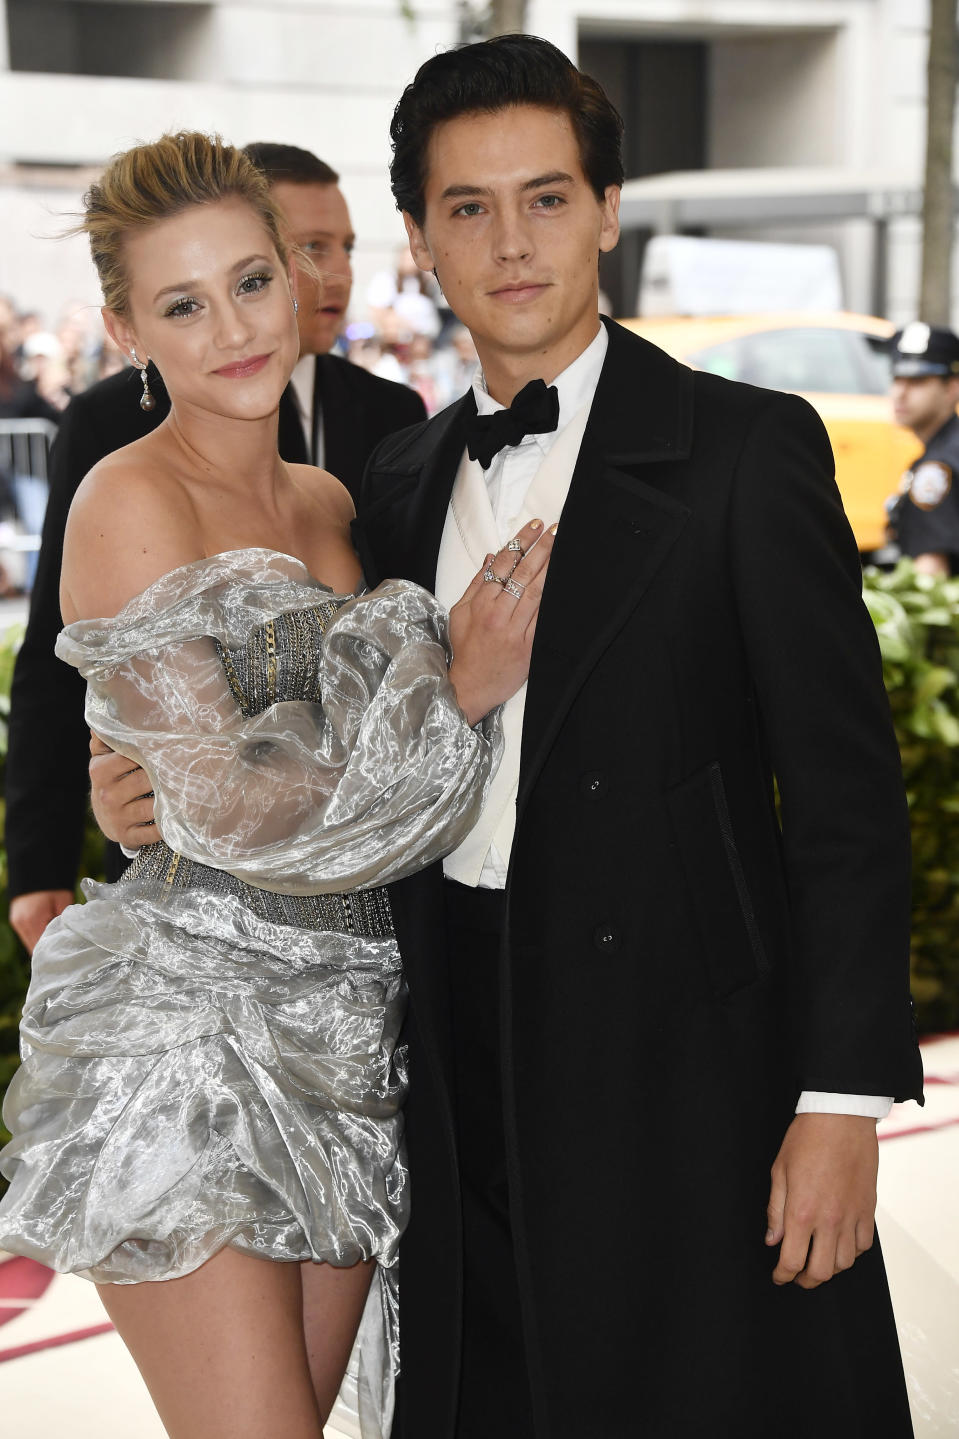 Lili Reinhart and Cole Sprouse at the 2018 Met Gala.<em> (Getty Images)</em>